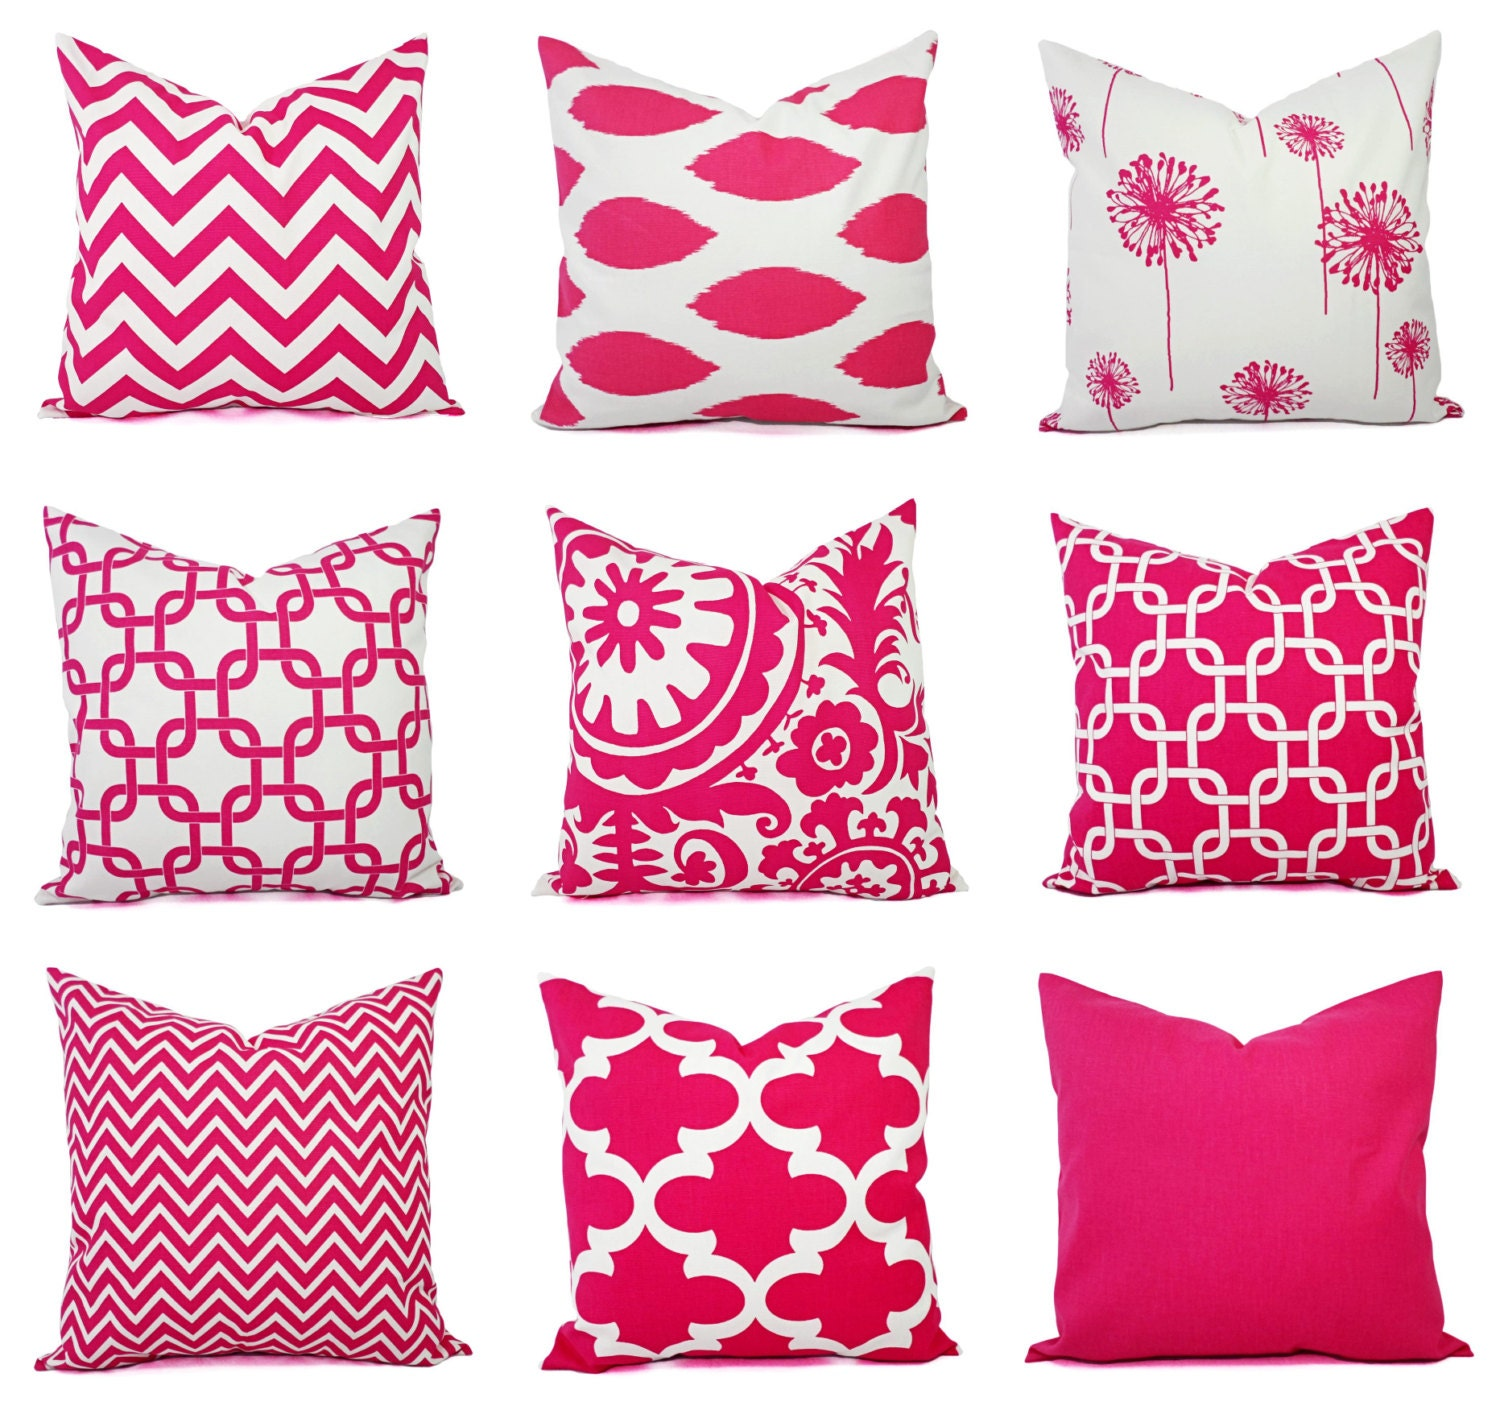 Throw Pillow Cover Hot Pink and White Pillow Decorative